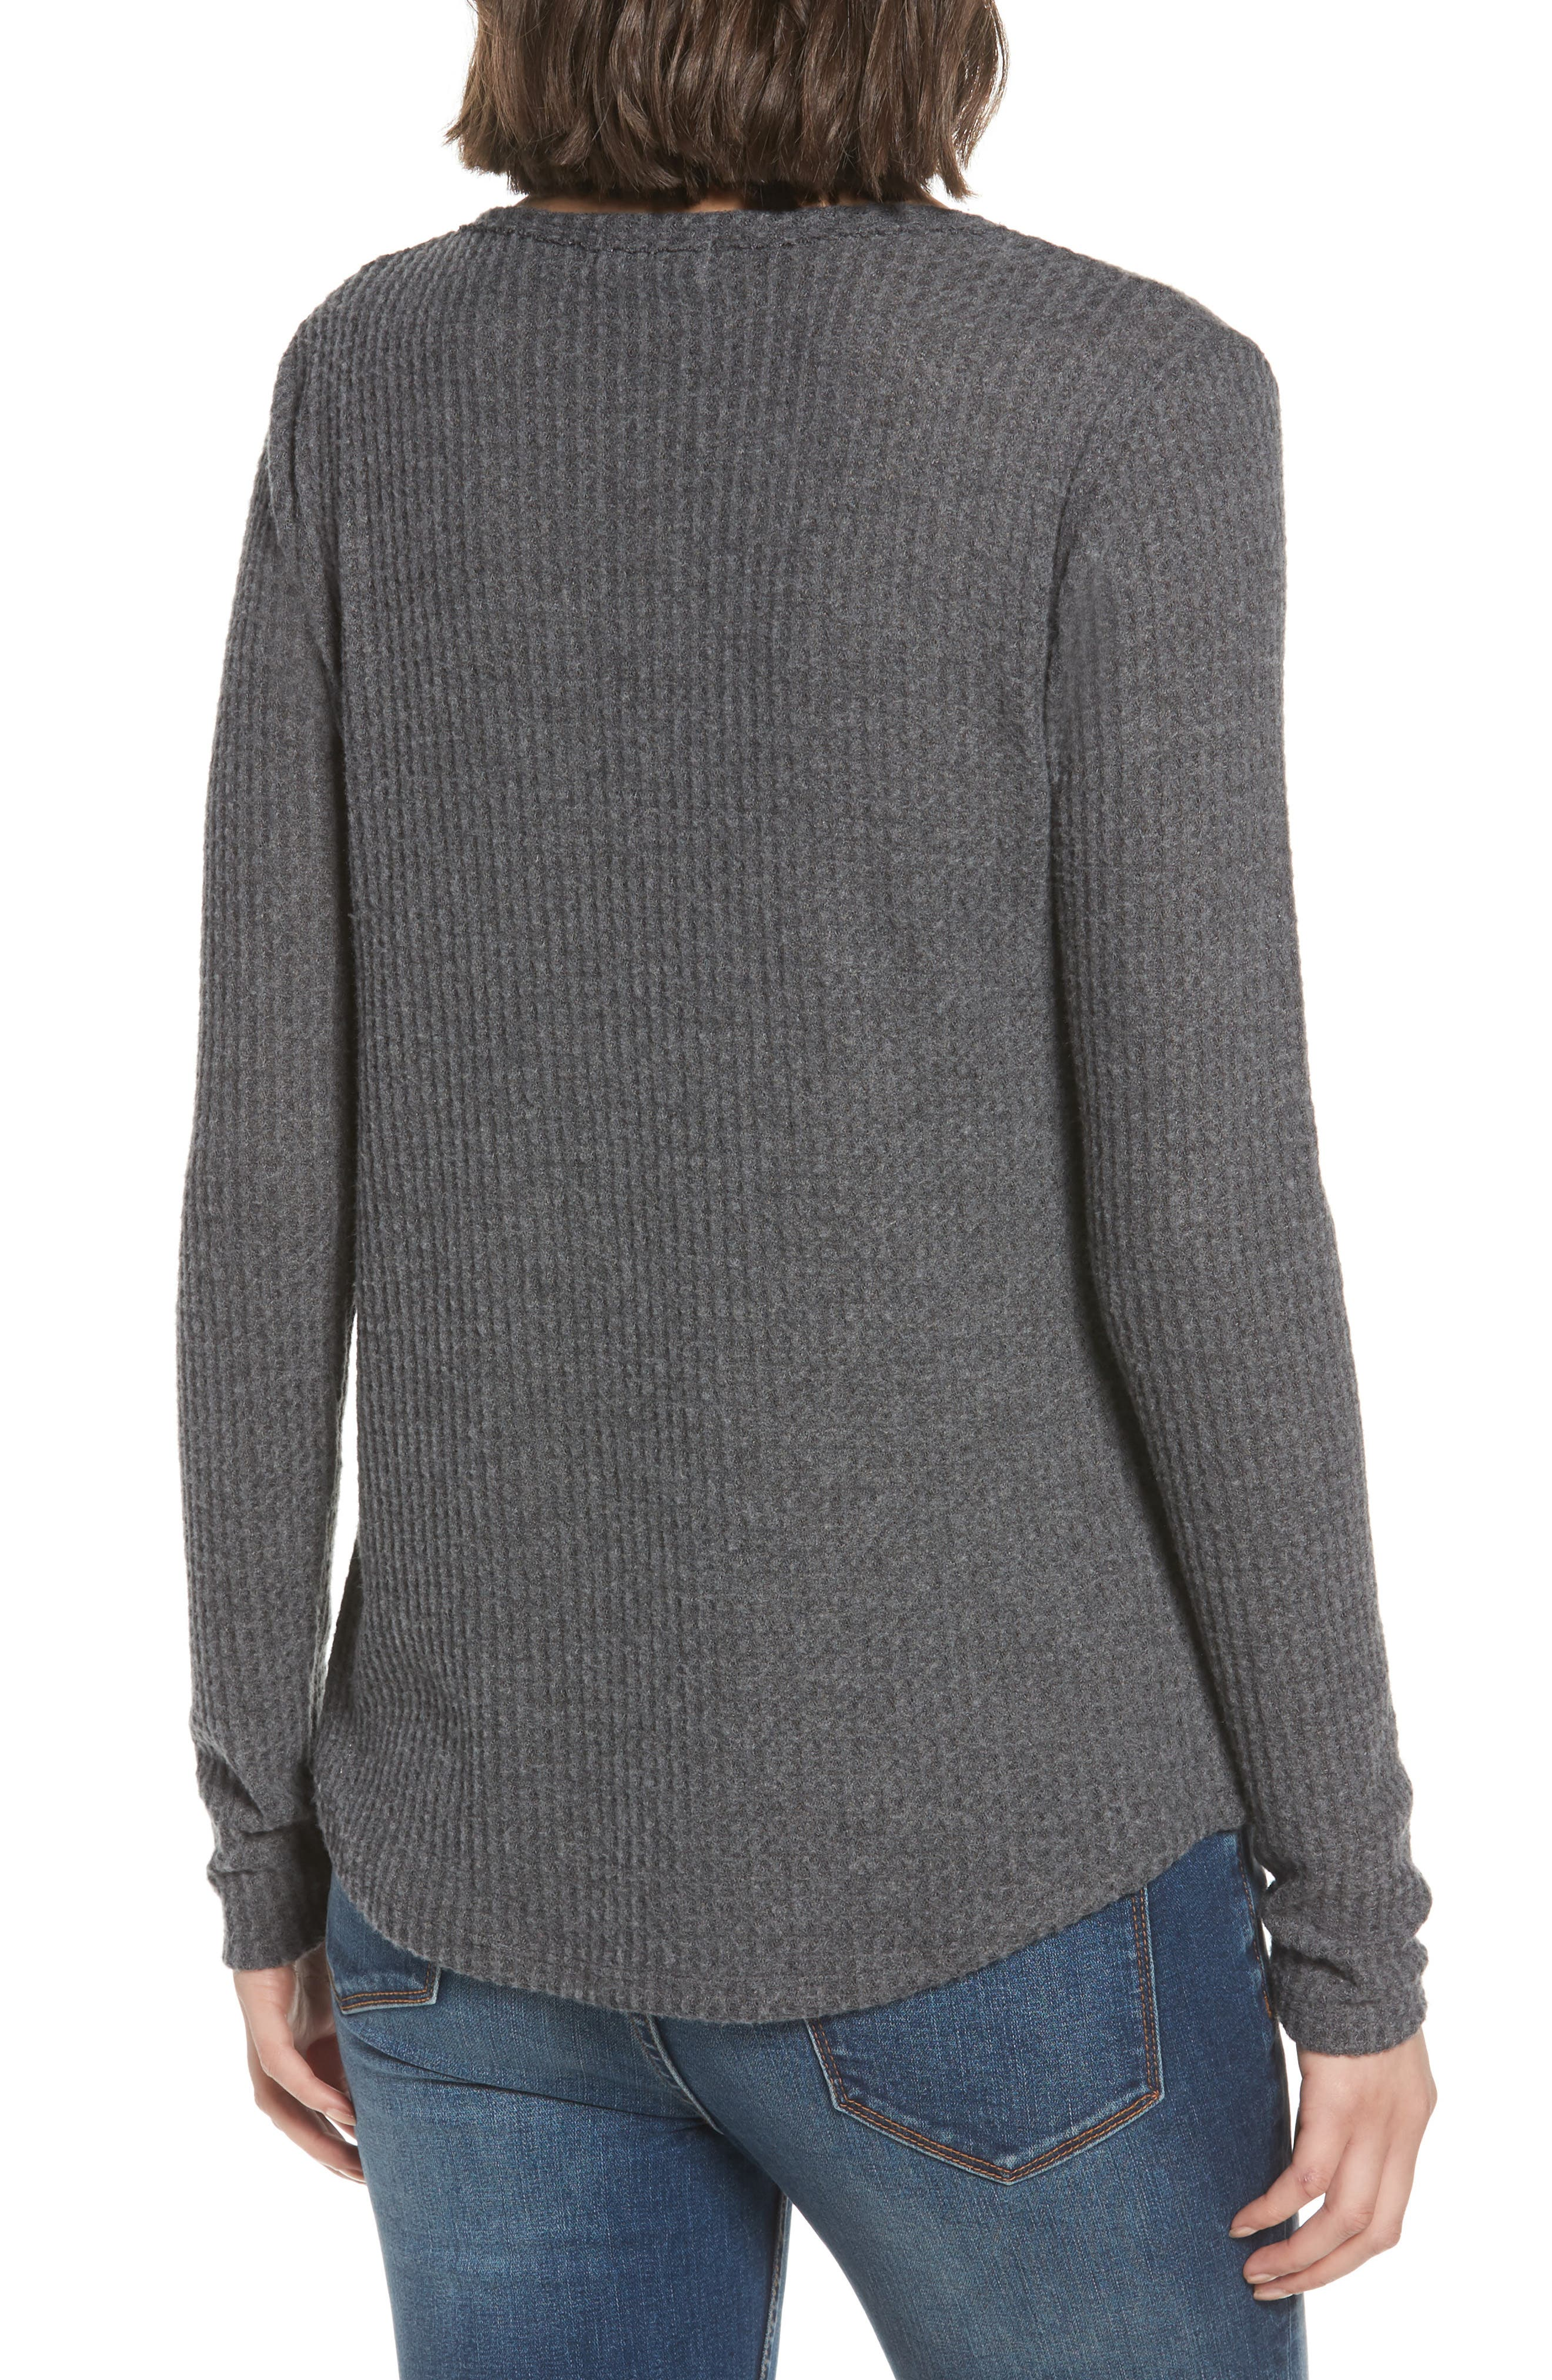 SOCIALITE, Thermal Henley Top, Alternate thumbnail 2, color, 034